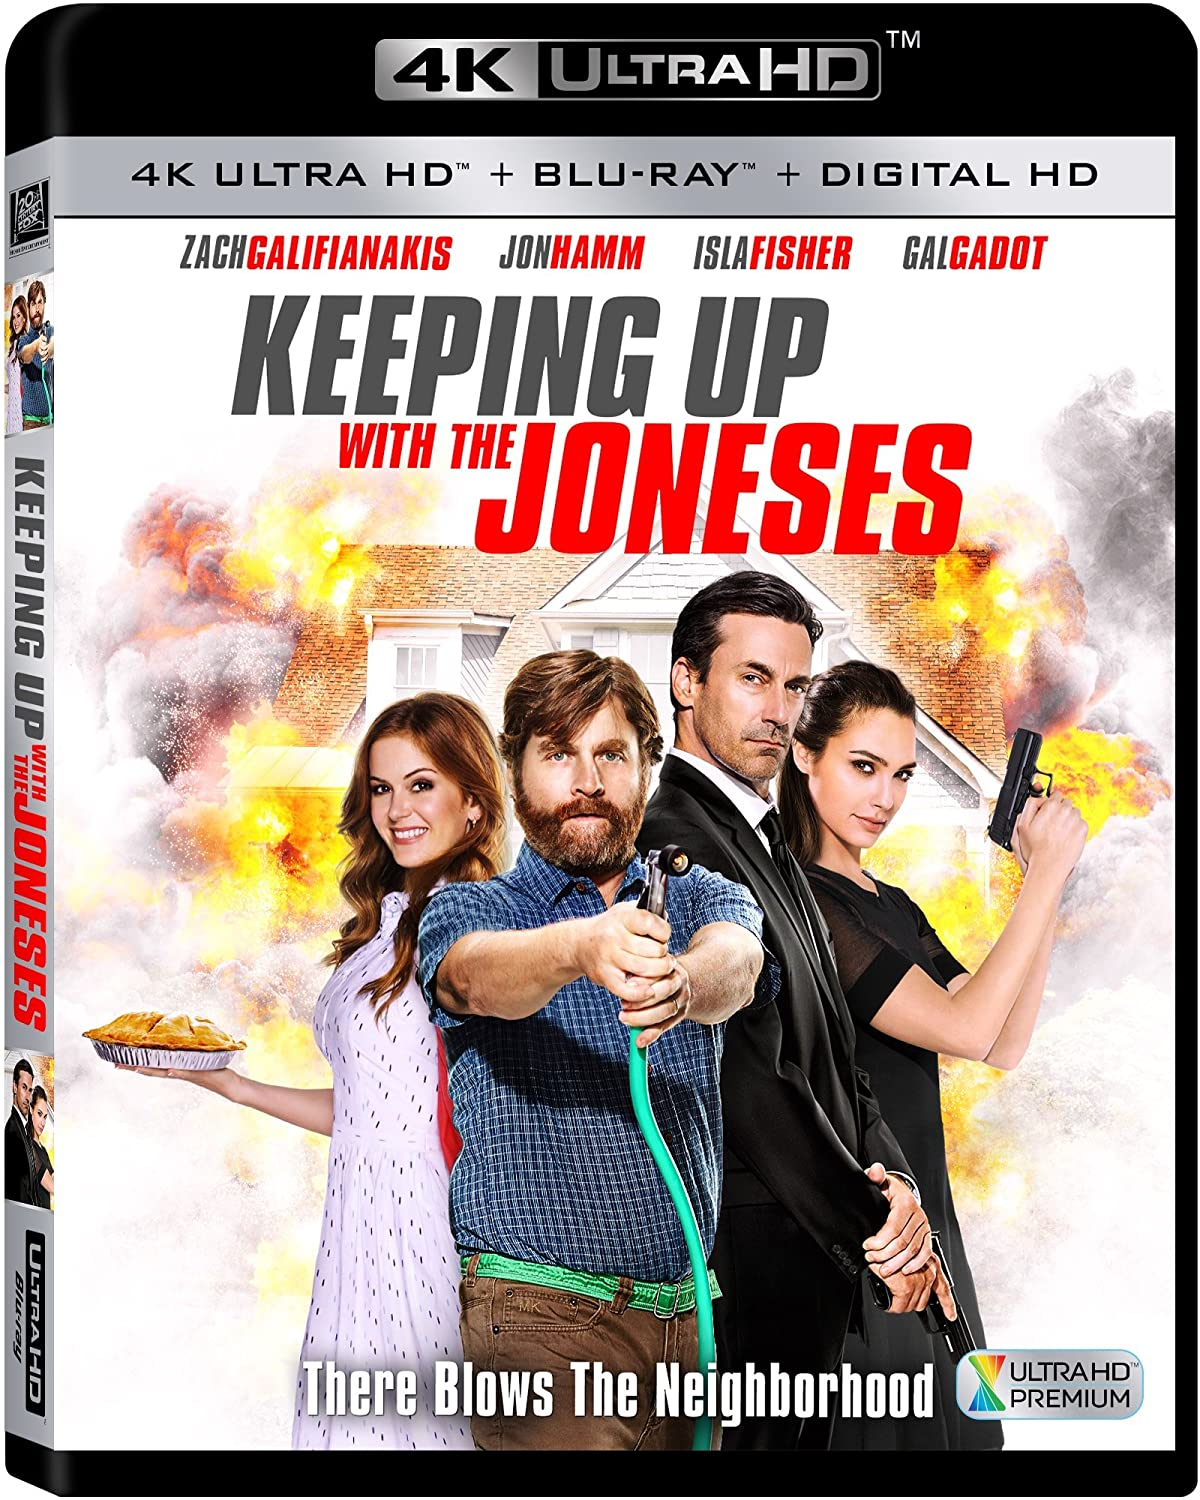 5. Don't Keep Up With the Joneses (or the Tomasi Hills, the Dumas, or the Zirhouvas)